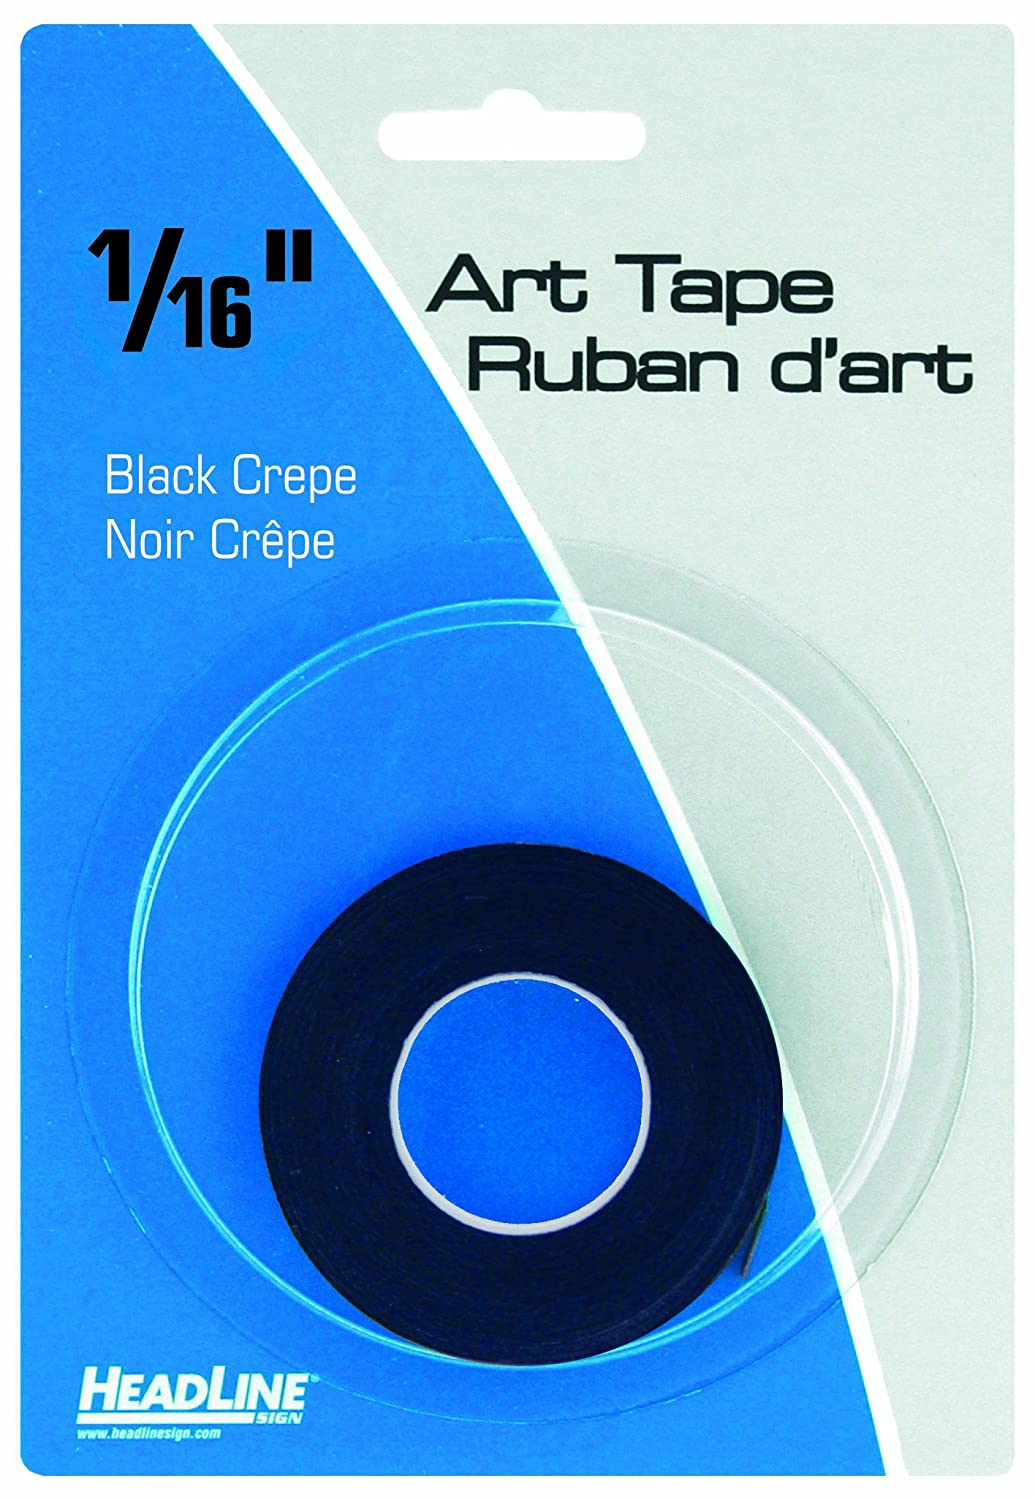 Headline Sign 73161 Graphic Art Tape, Black, 1/16-Inch Wide, 603 Inches Long